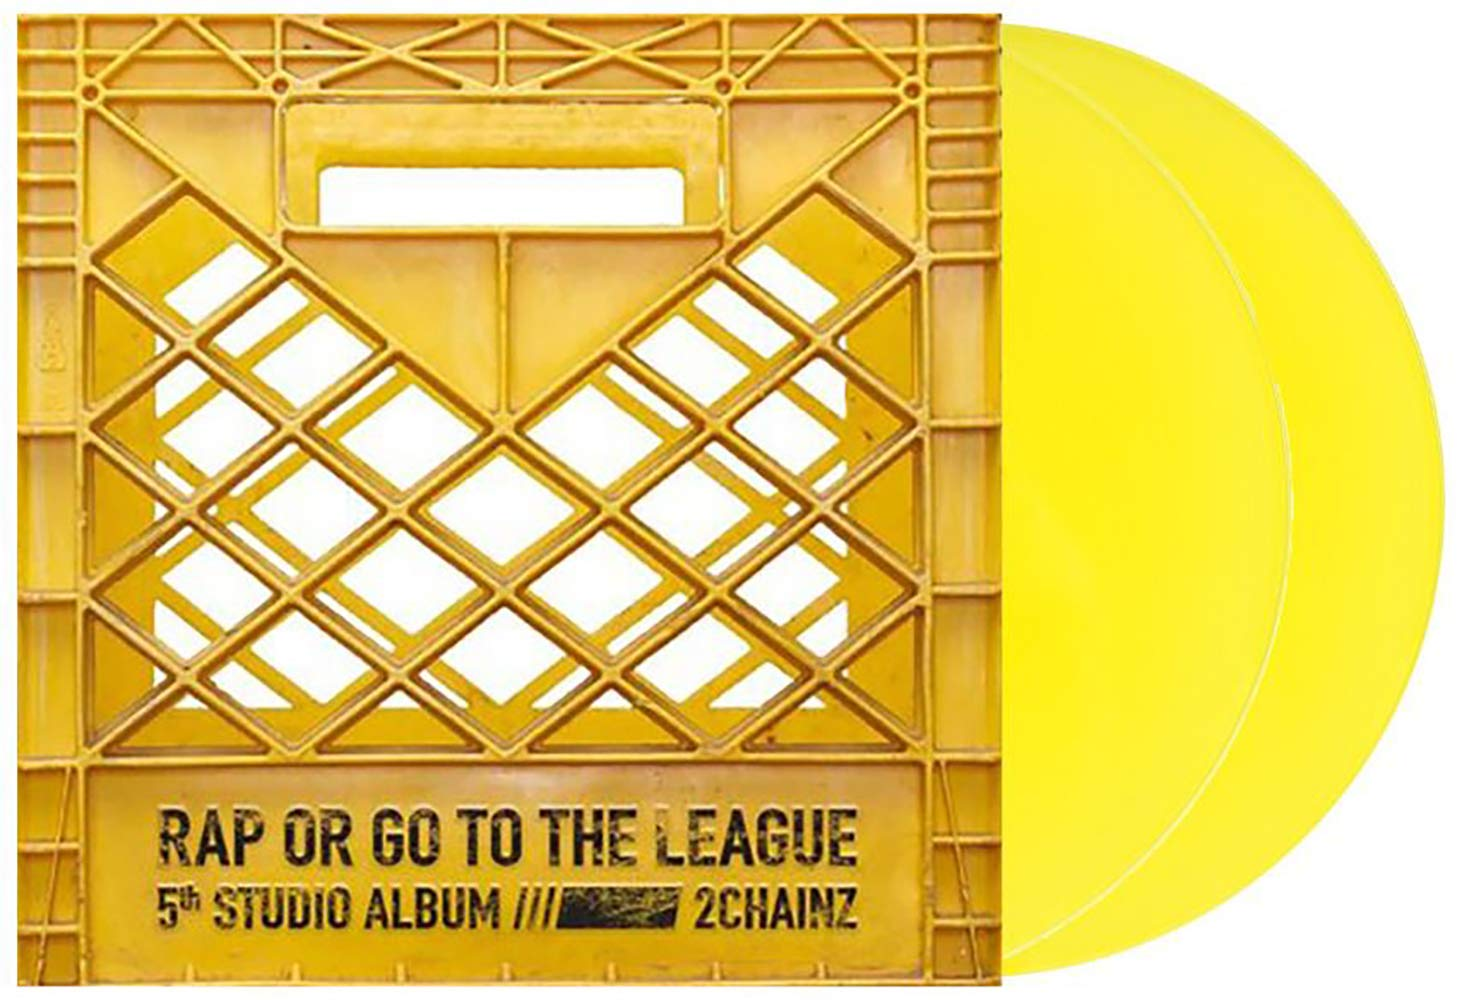 Rap Or Go To The League - Exclusive Limited Edition Yellow 2xLP Vinyl (#/2000) [Condition-VG+NM] by Def Jam